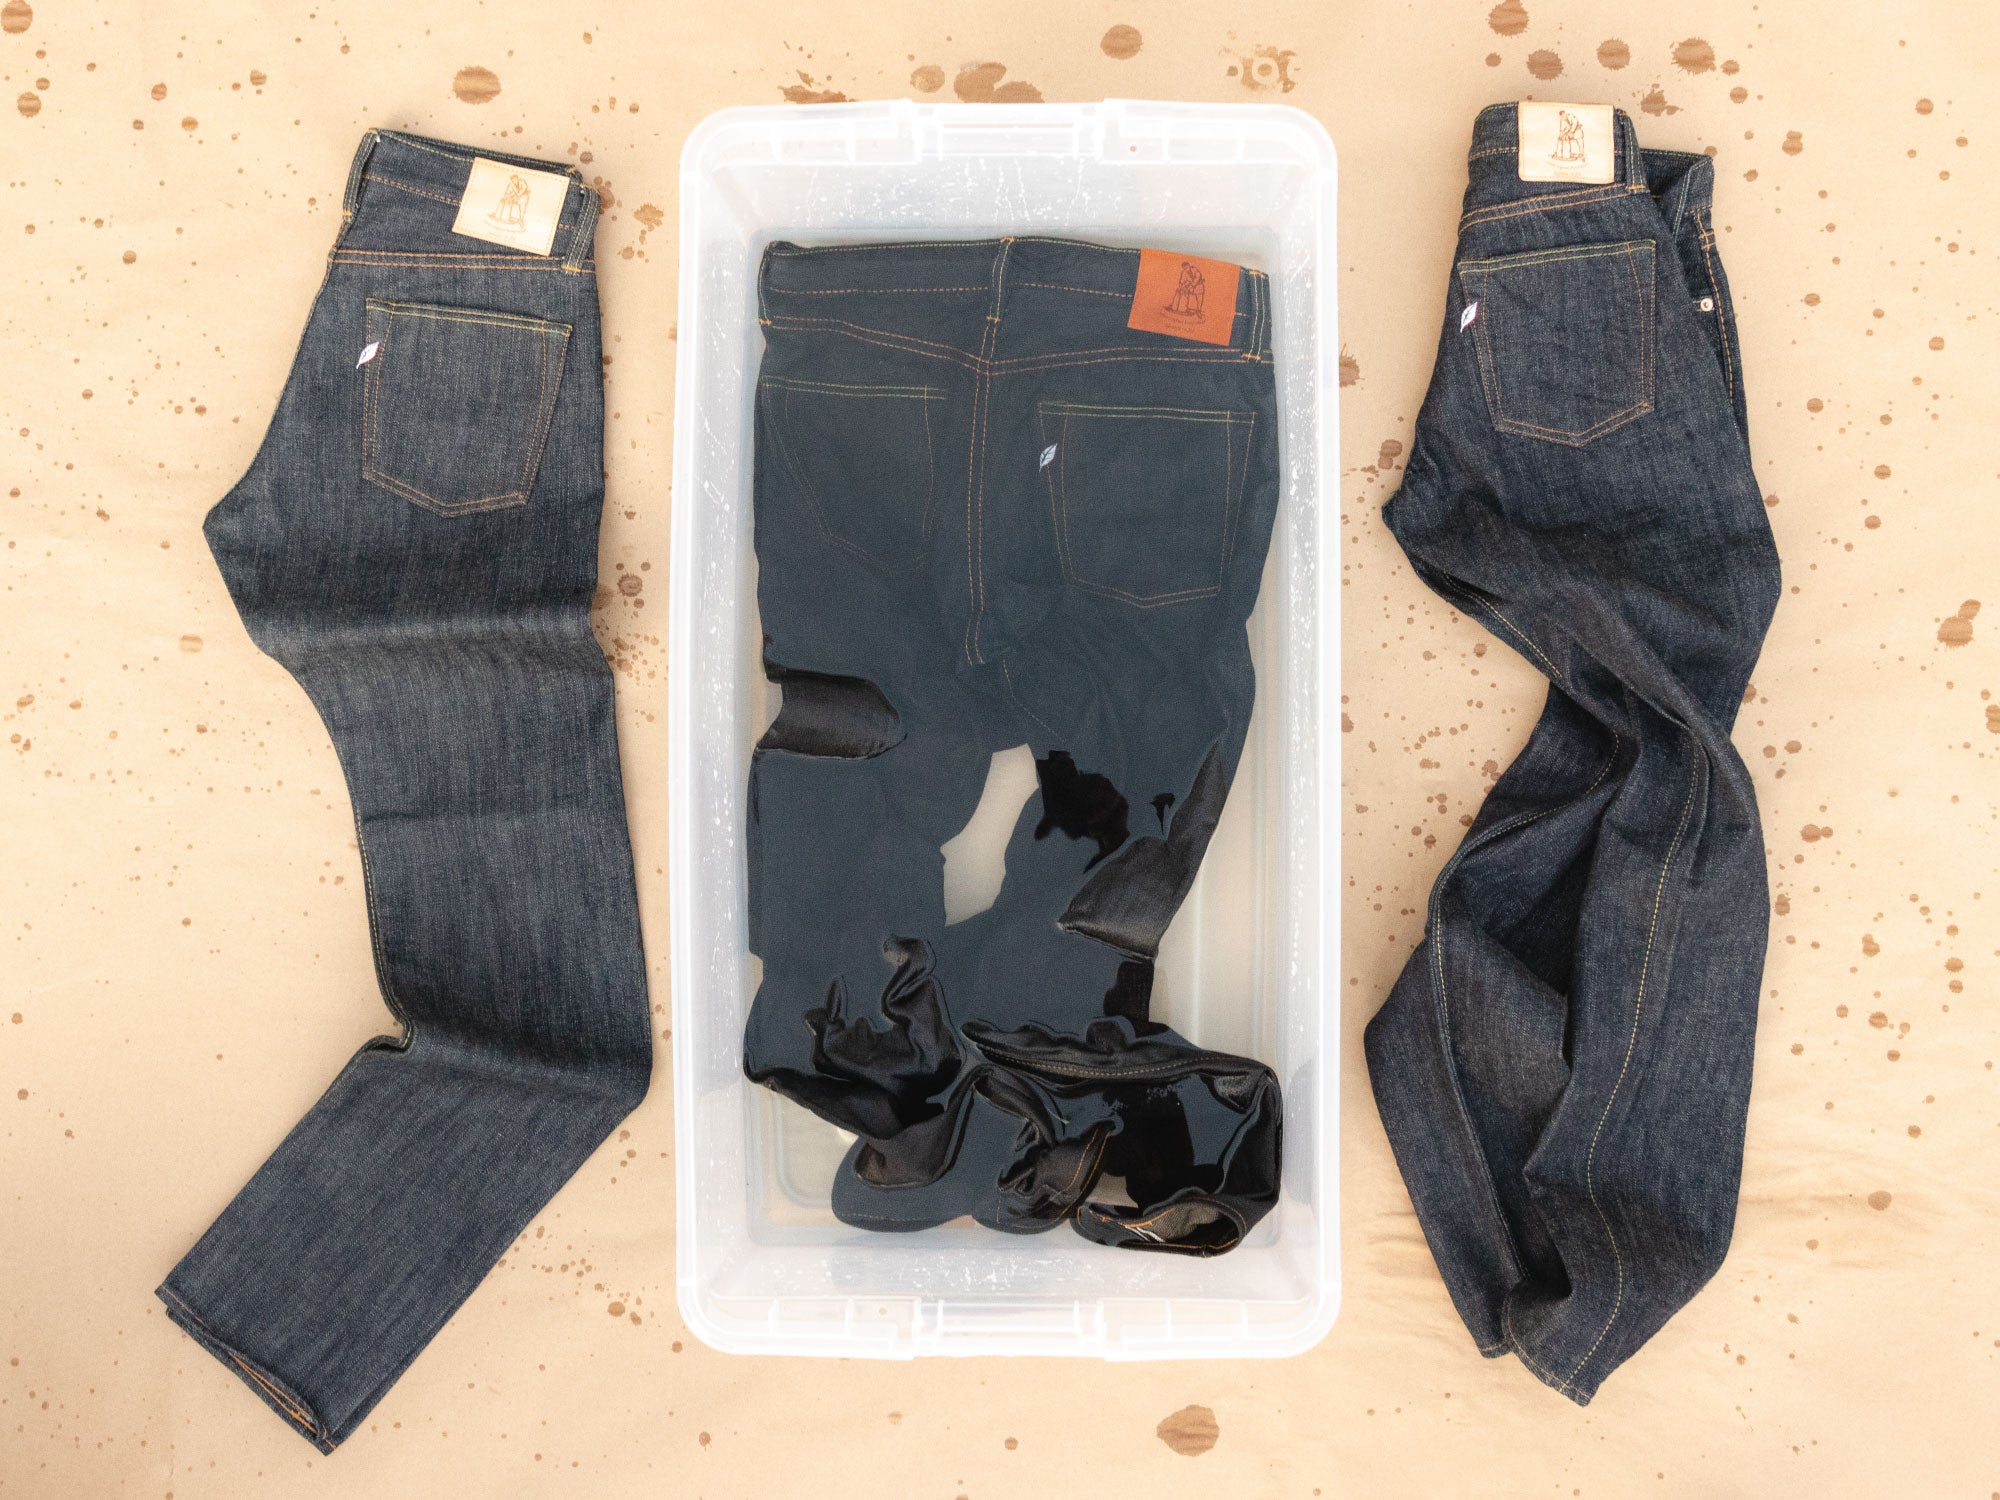 unsanforized denim before and after